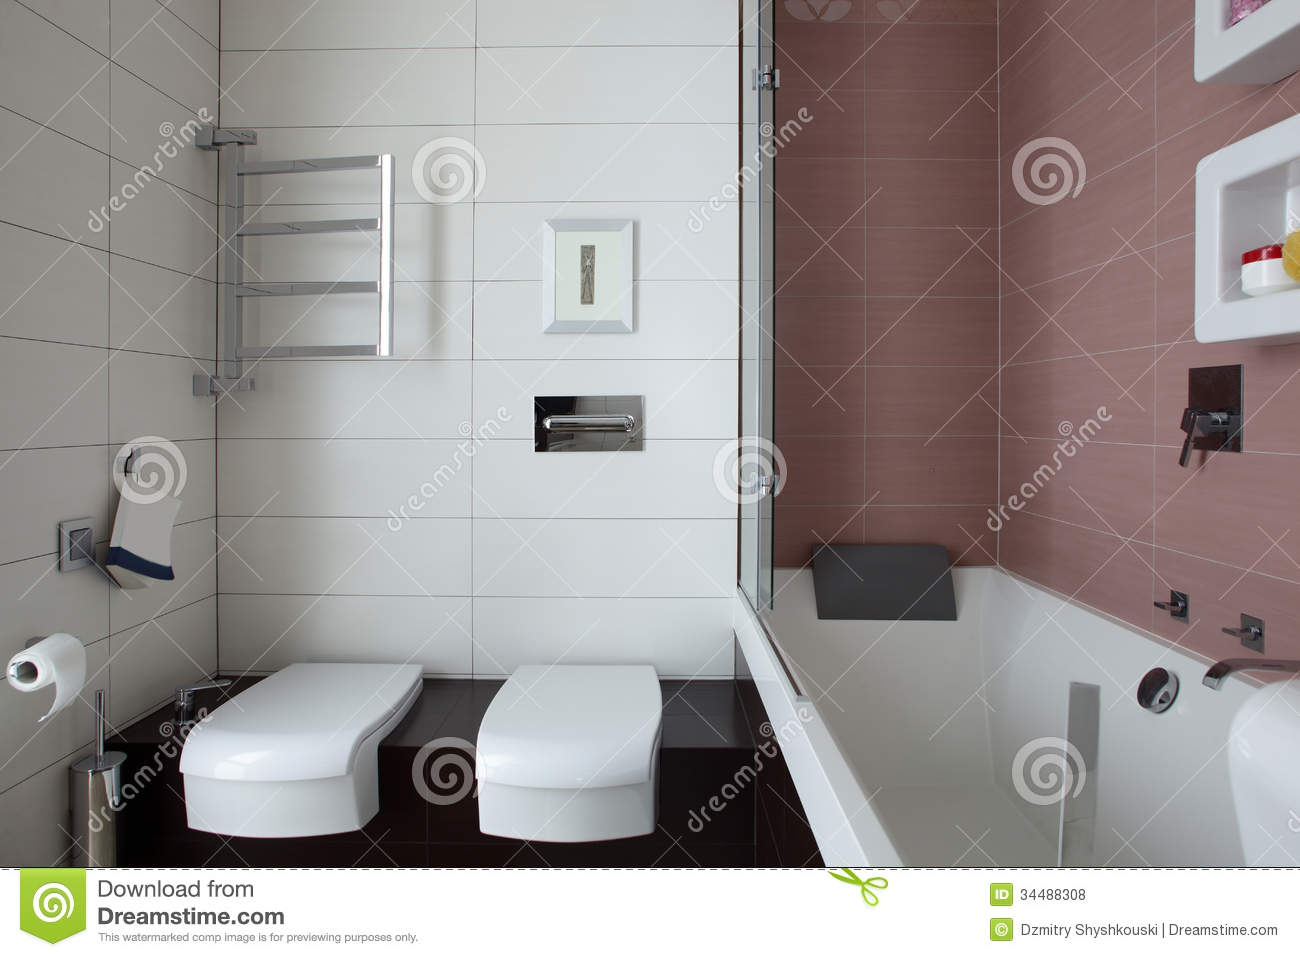 Bright And Clean European Toilet Stock Photo - Image of bathroom ...